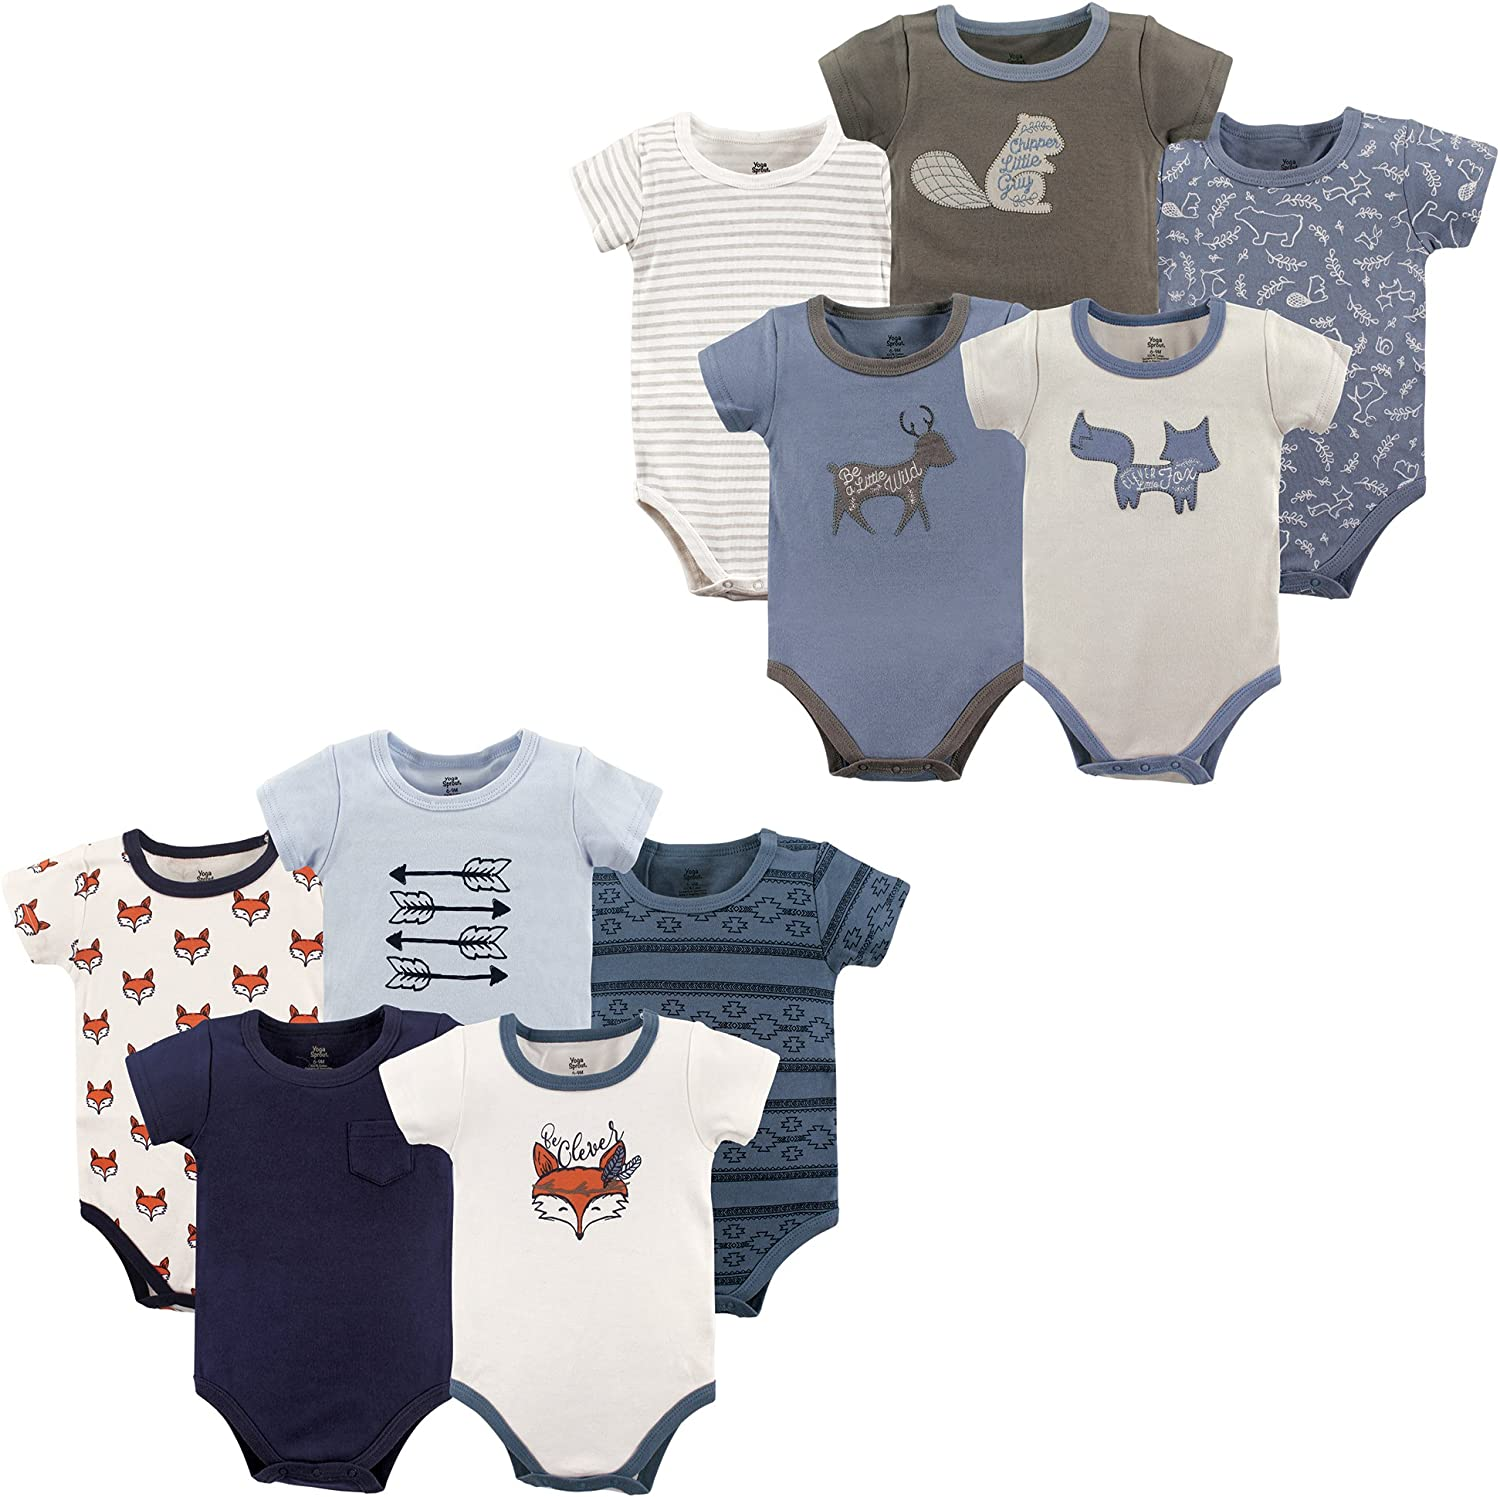 Yoga Sprout Unisex Baby Cotton Bodysuits